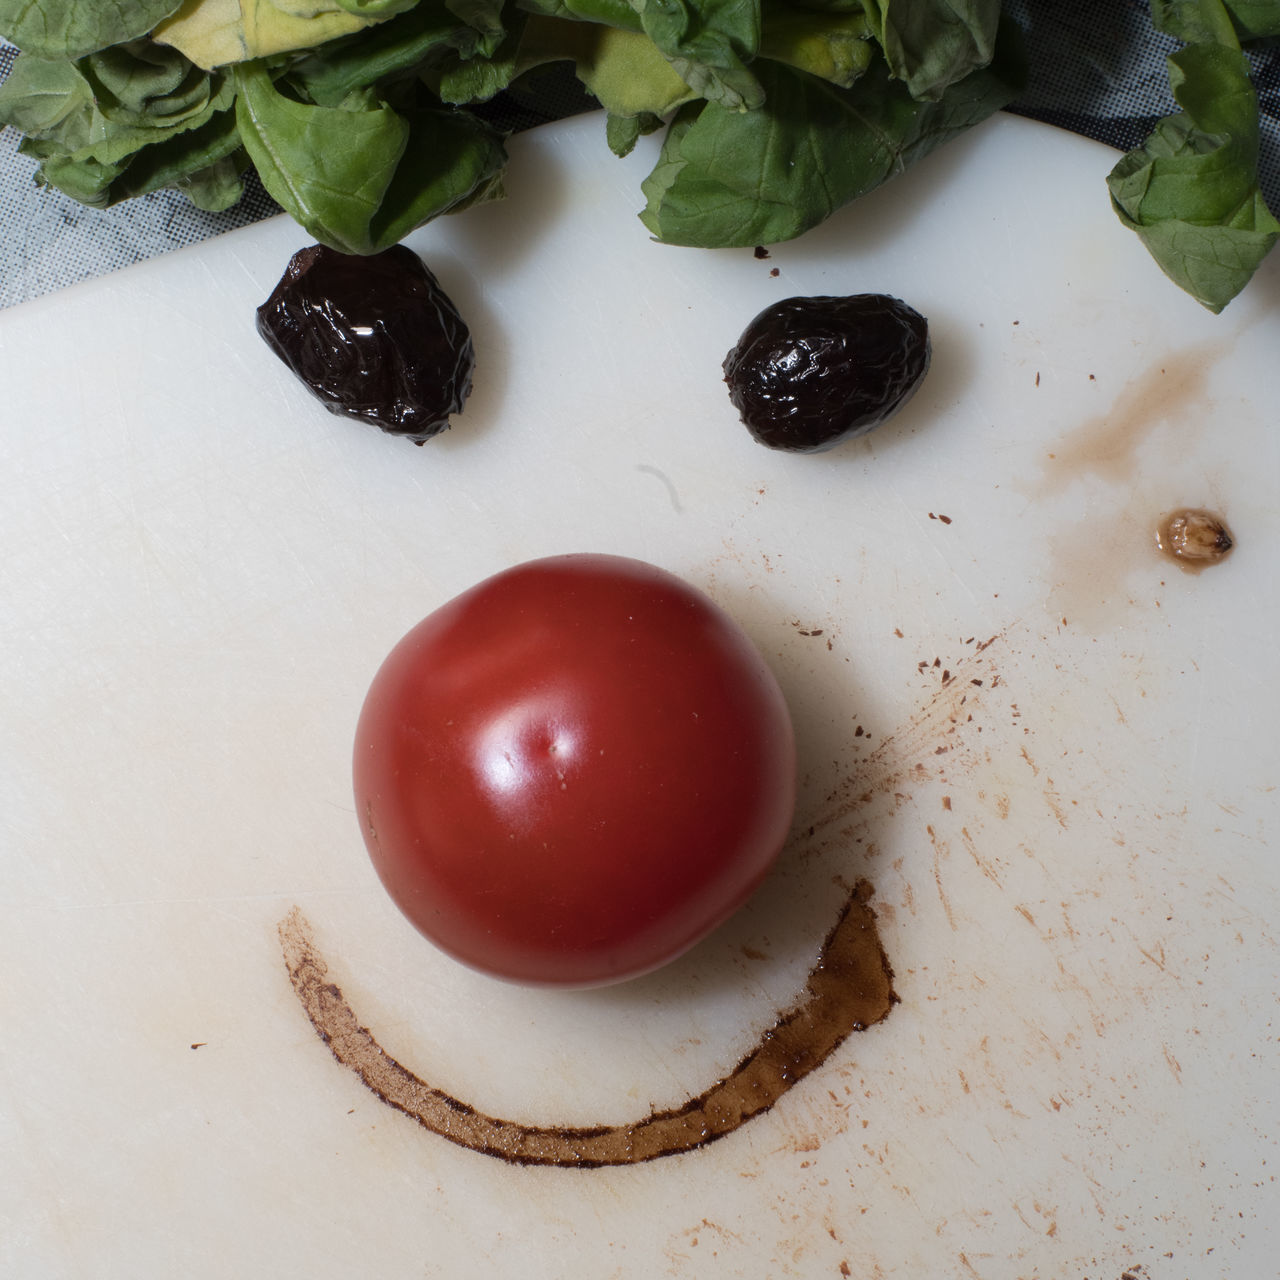 A whig from radish leaves - not the worst whig in these days… Breakfast Day Face Flash Photography Food Food And Drink Freshness Fruit Healthy Eating High Angle View Indoors  Keep Smiling Kitchen Kitchen Art Morning No People Olives Optimistic Radish Studio Shot Table Tomato Vinegar